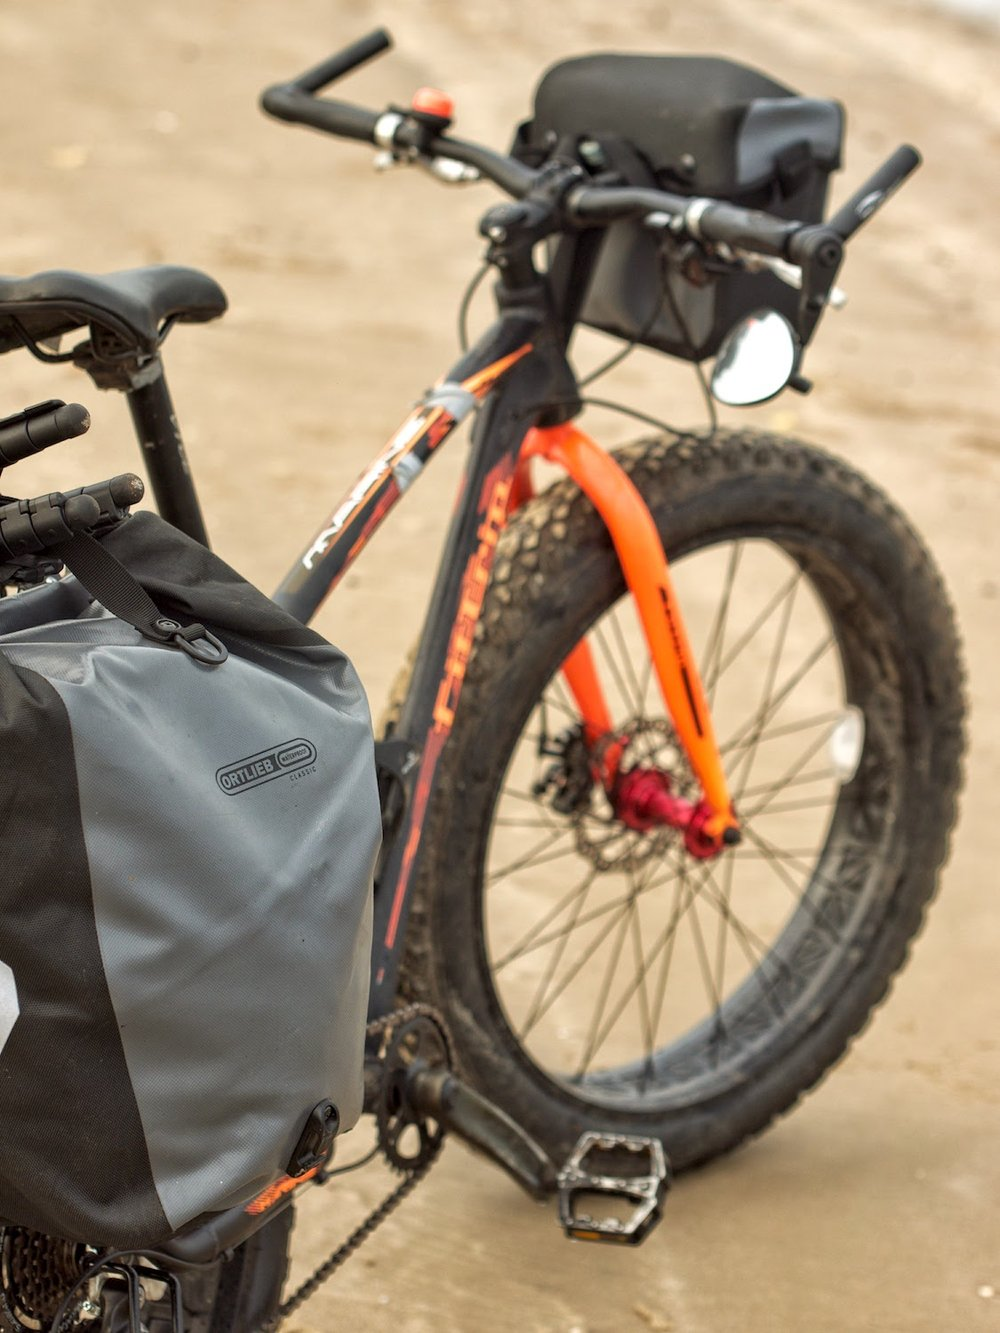 Fully loaded bicycle with handlebar bag and rear panniers.